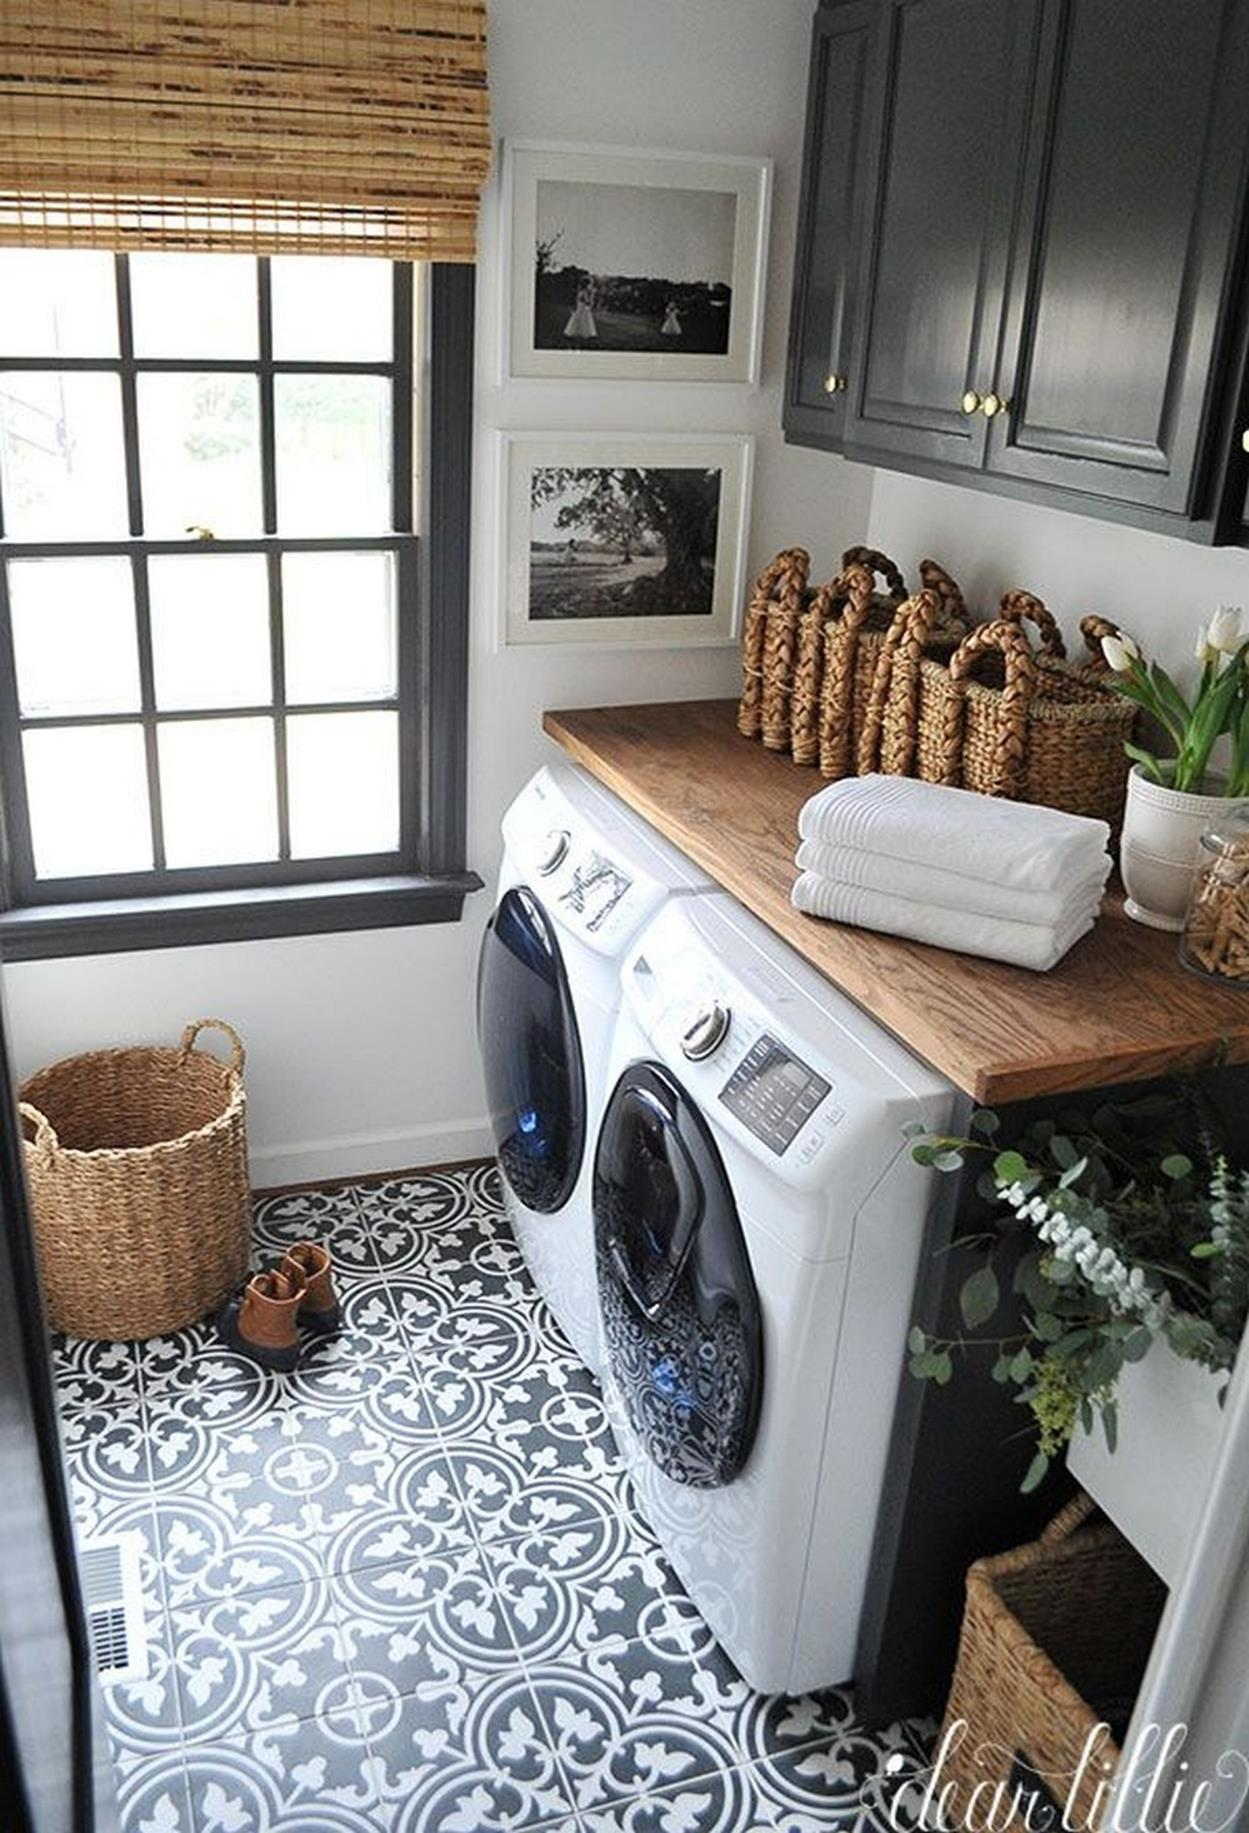 Decorating A Laundry Room On A Budget 27